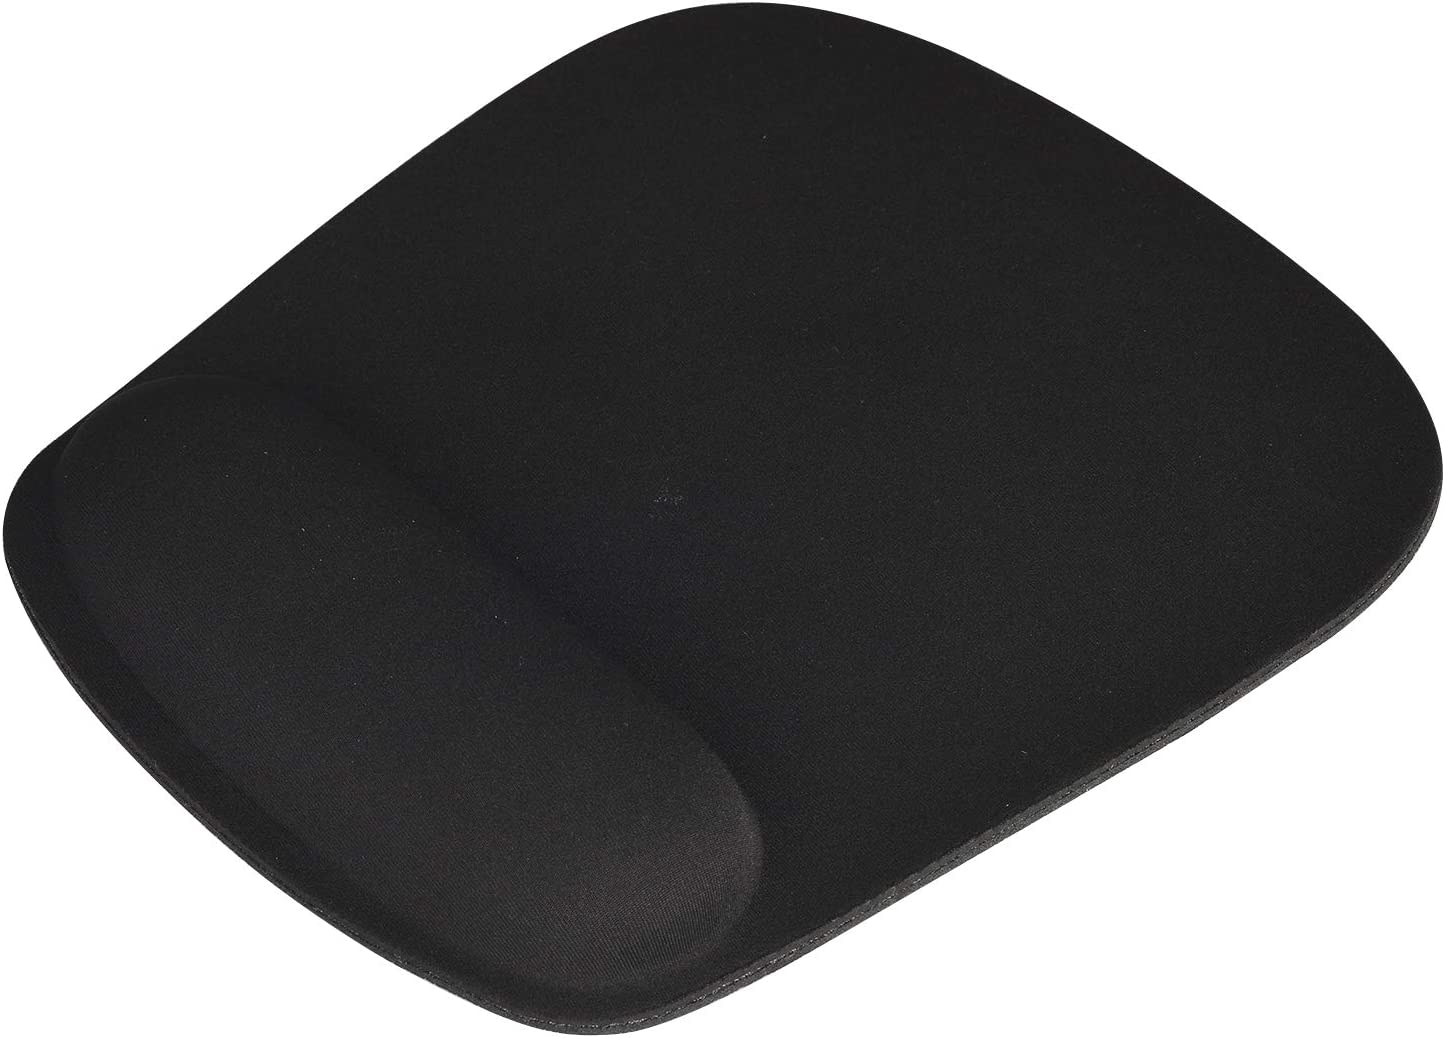 iDream365 Mouse Pad with Wrist Support,Ergonomic Mouse Pad with Non-Slip Rubber Base and Raised Memory Foam for Laptop, Computer, Gaming,Home, Office-Black